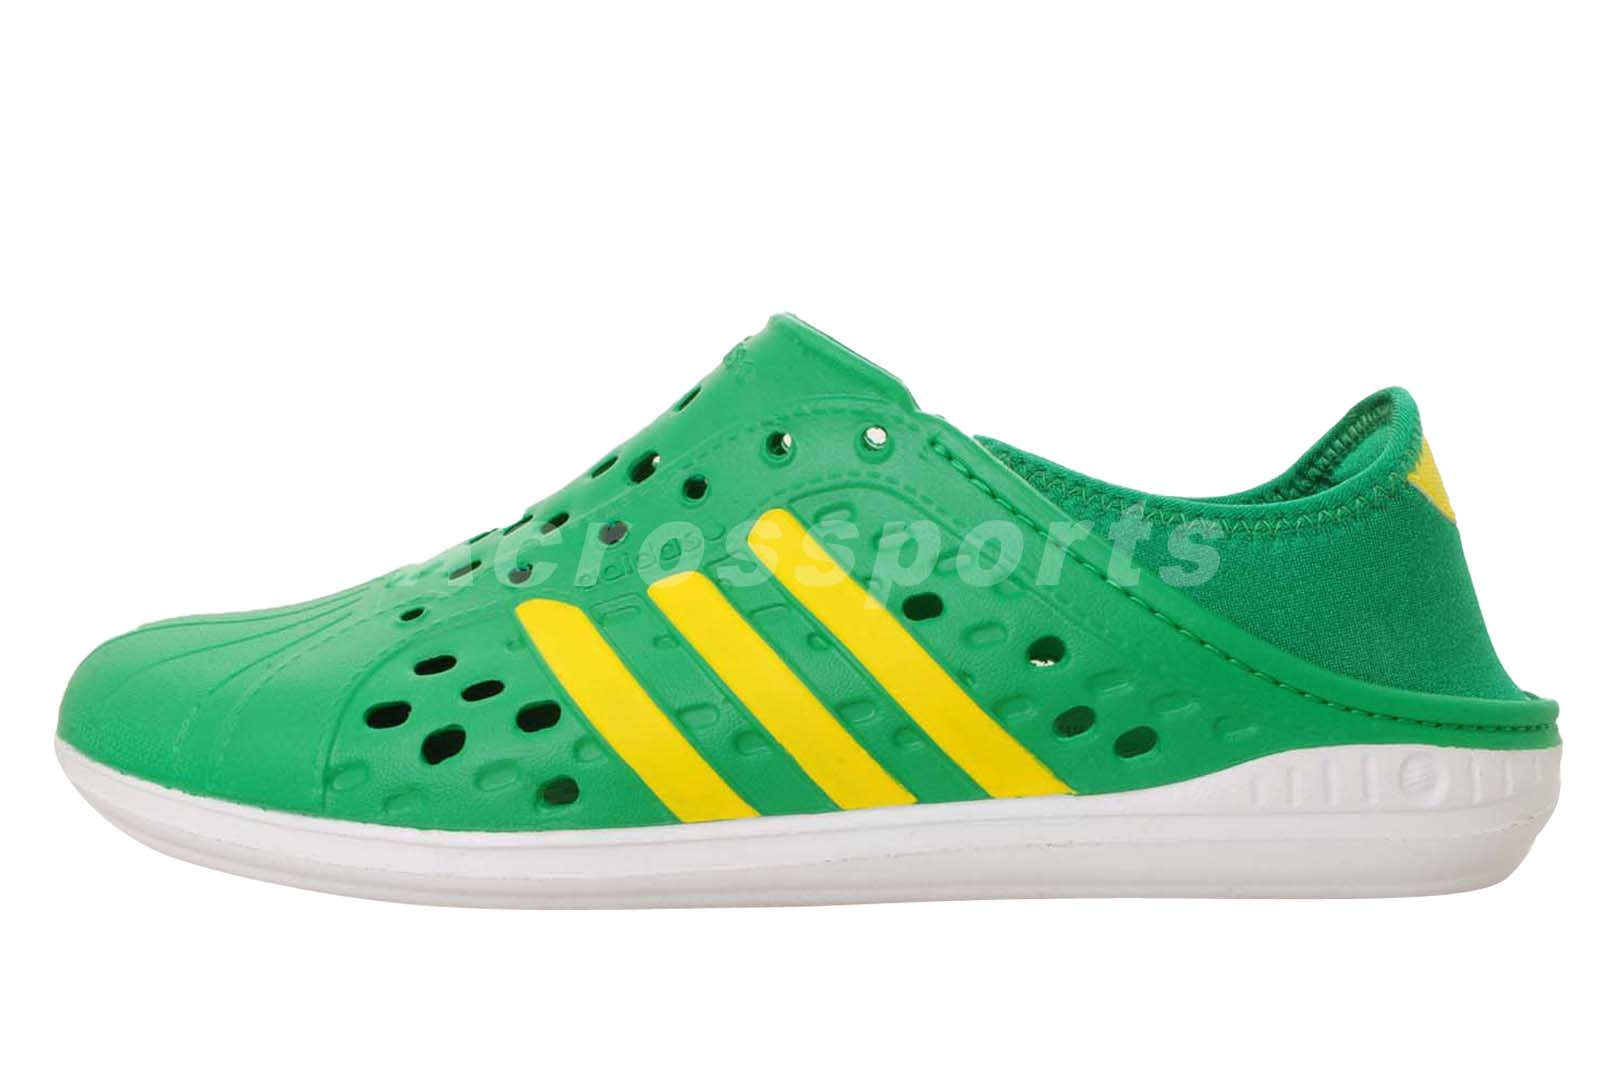 Adidas Neo Court Adapt Slip On